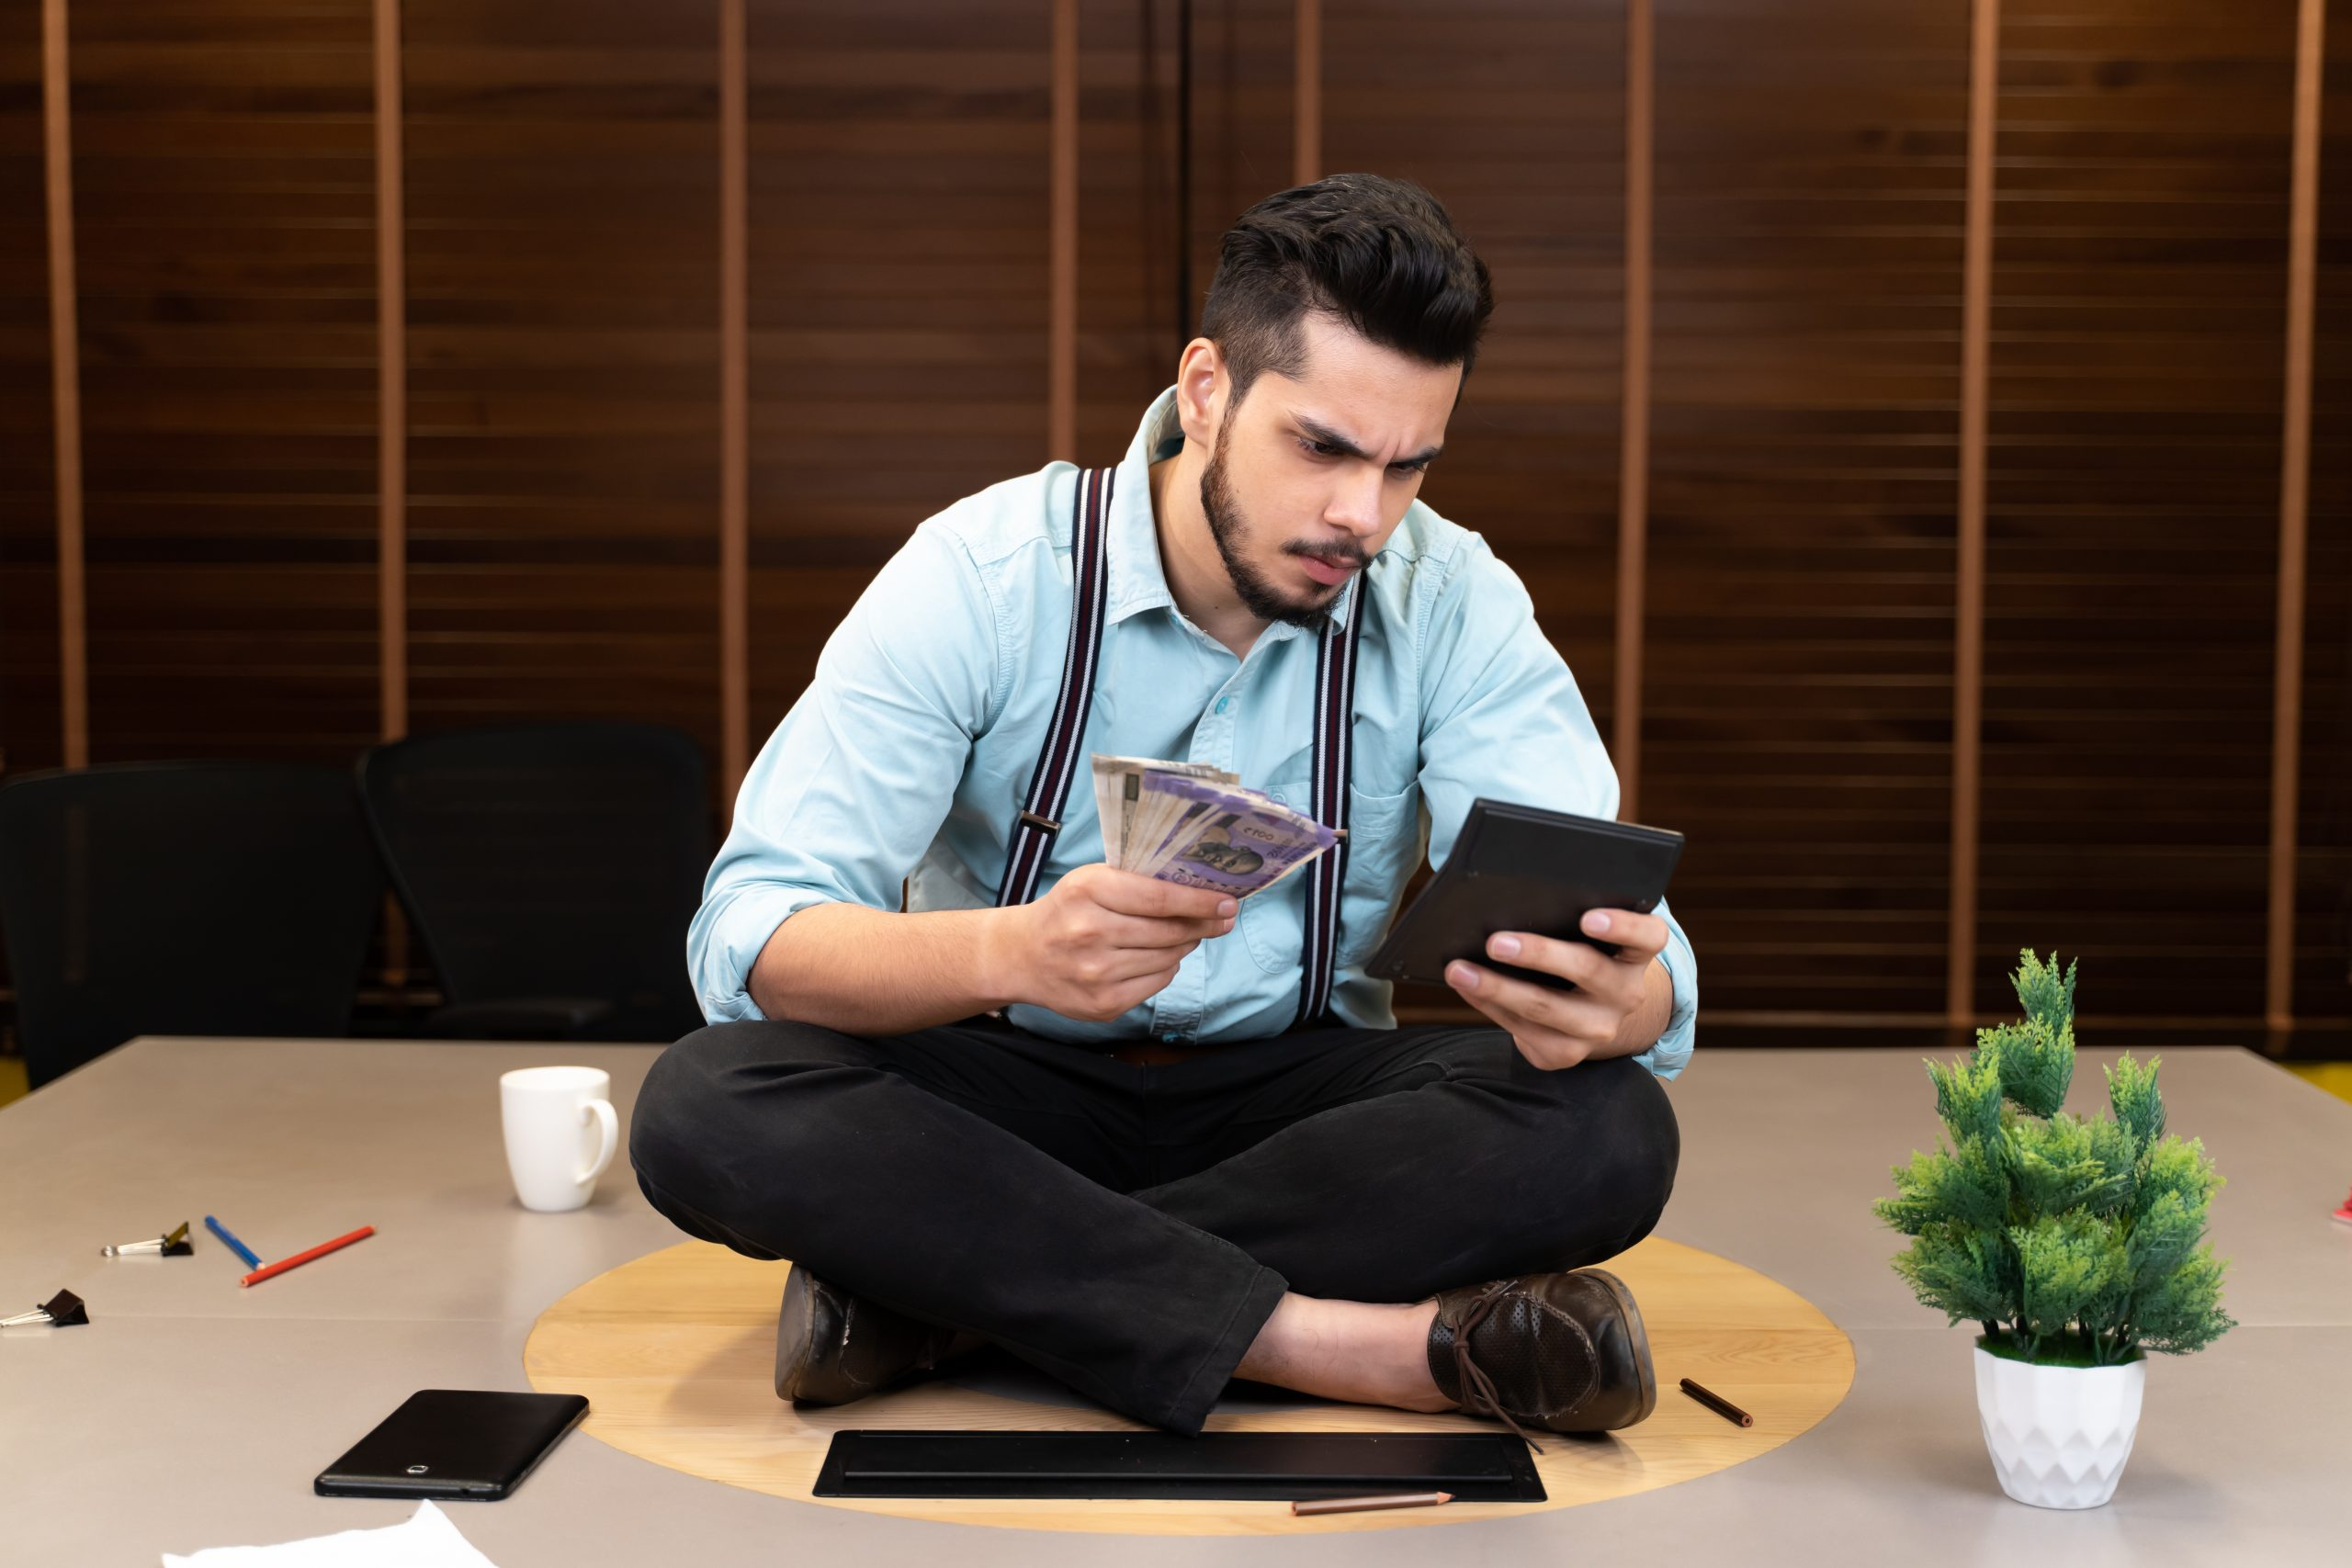 A man counting money and accounting.